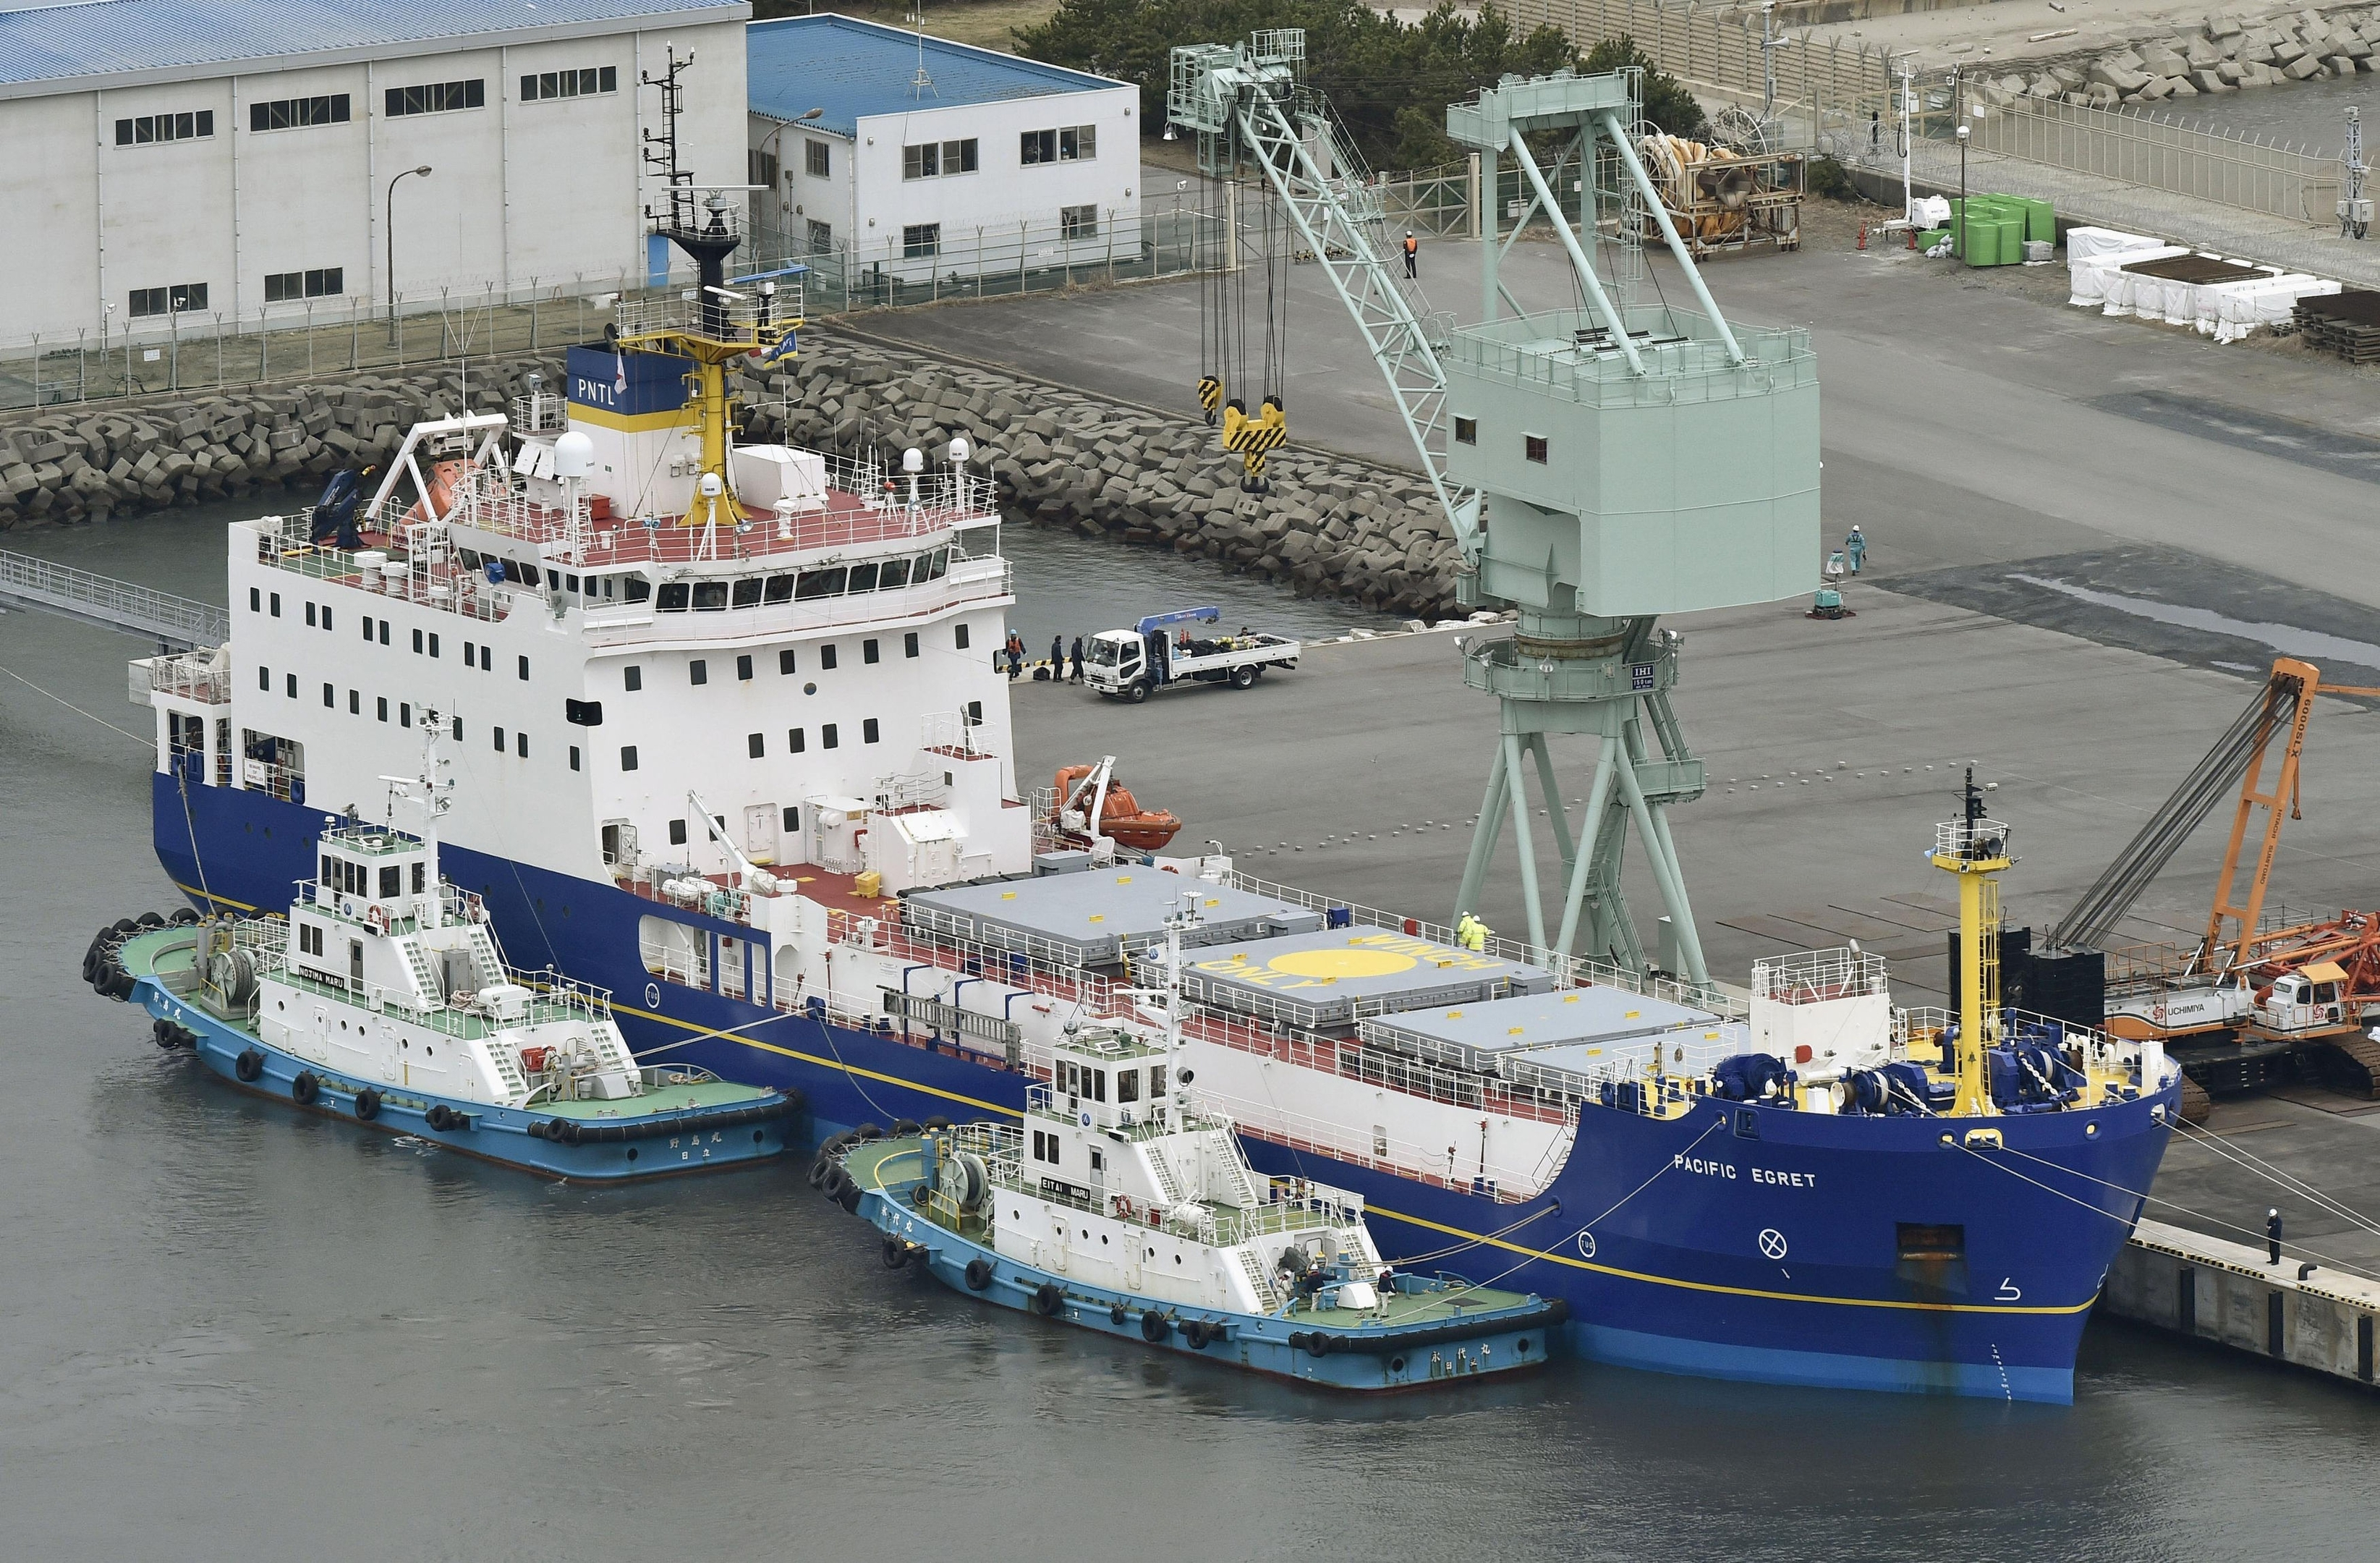 The Pacific Egret, one of the two British-flagged ships arrived in Japan, is anchored at a port in the village of Tokai, northeast of Tokyo